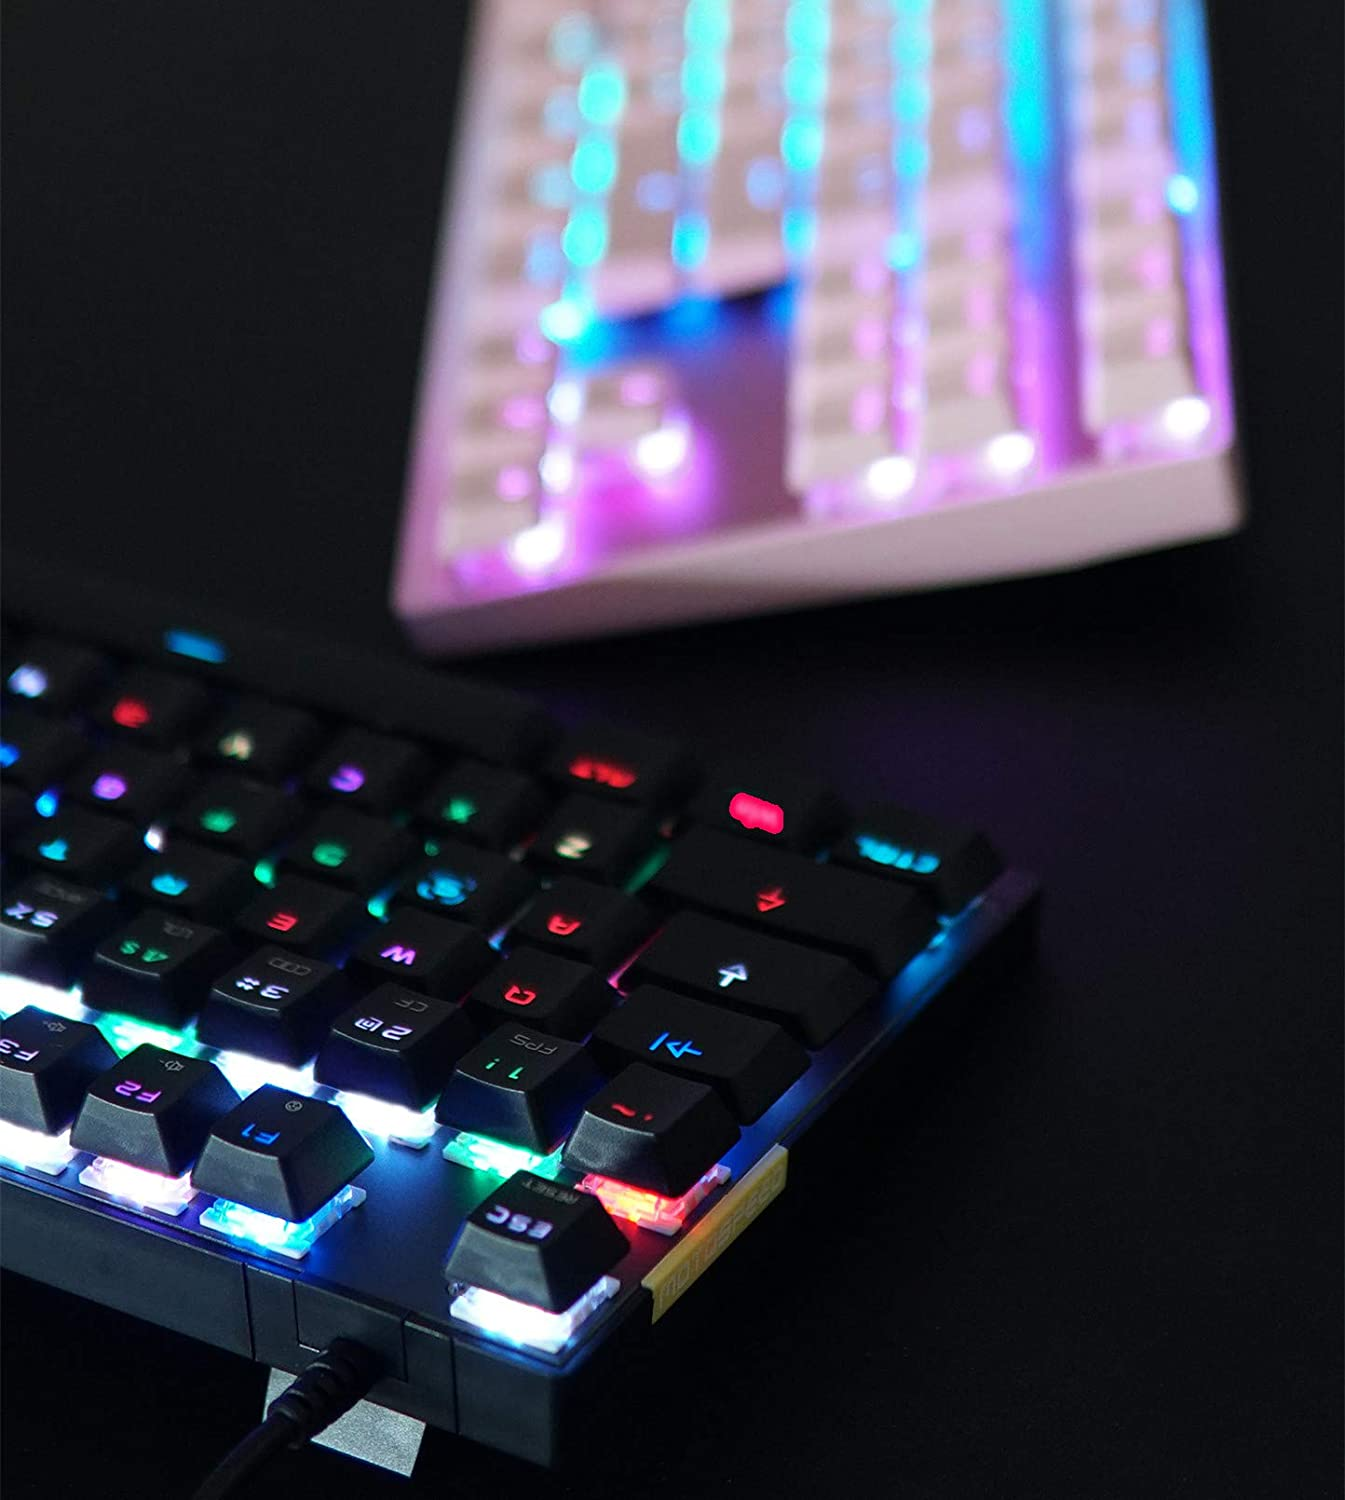 MOTOSPEED Gaming Mechanical Keyboard RGB Rainbow Backlit 87 Keys Illuminated Computer USB Gaming Keyboard with Red Switches for Mac//PC//Laptop Pink